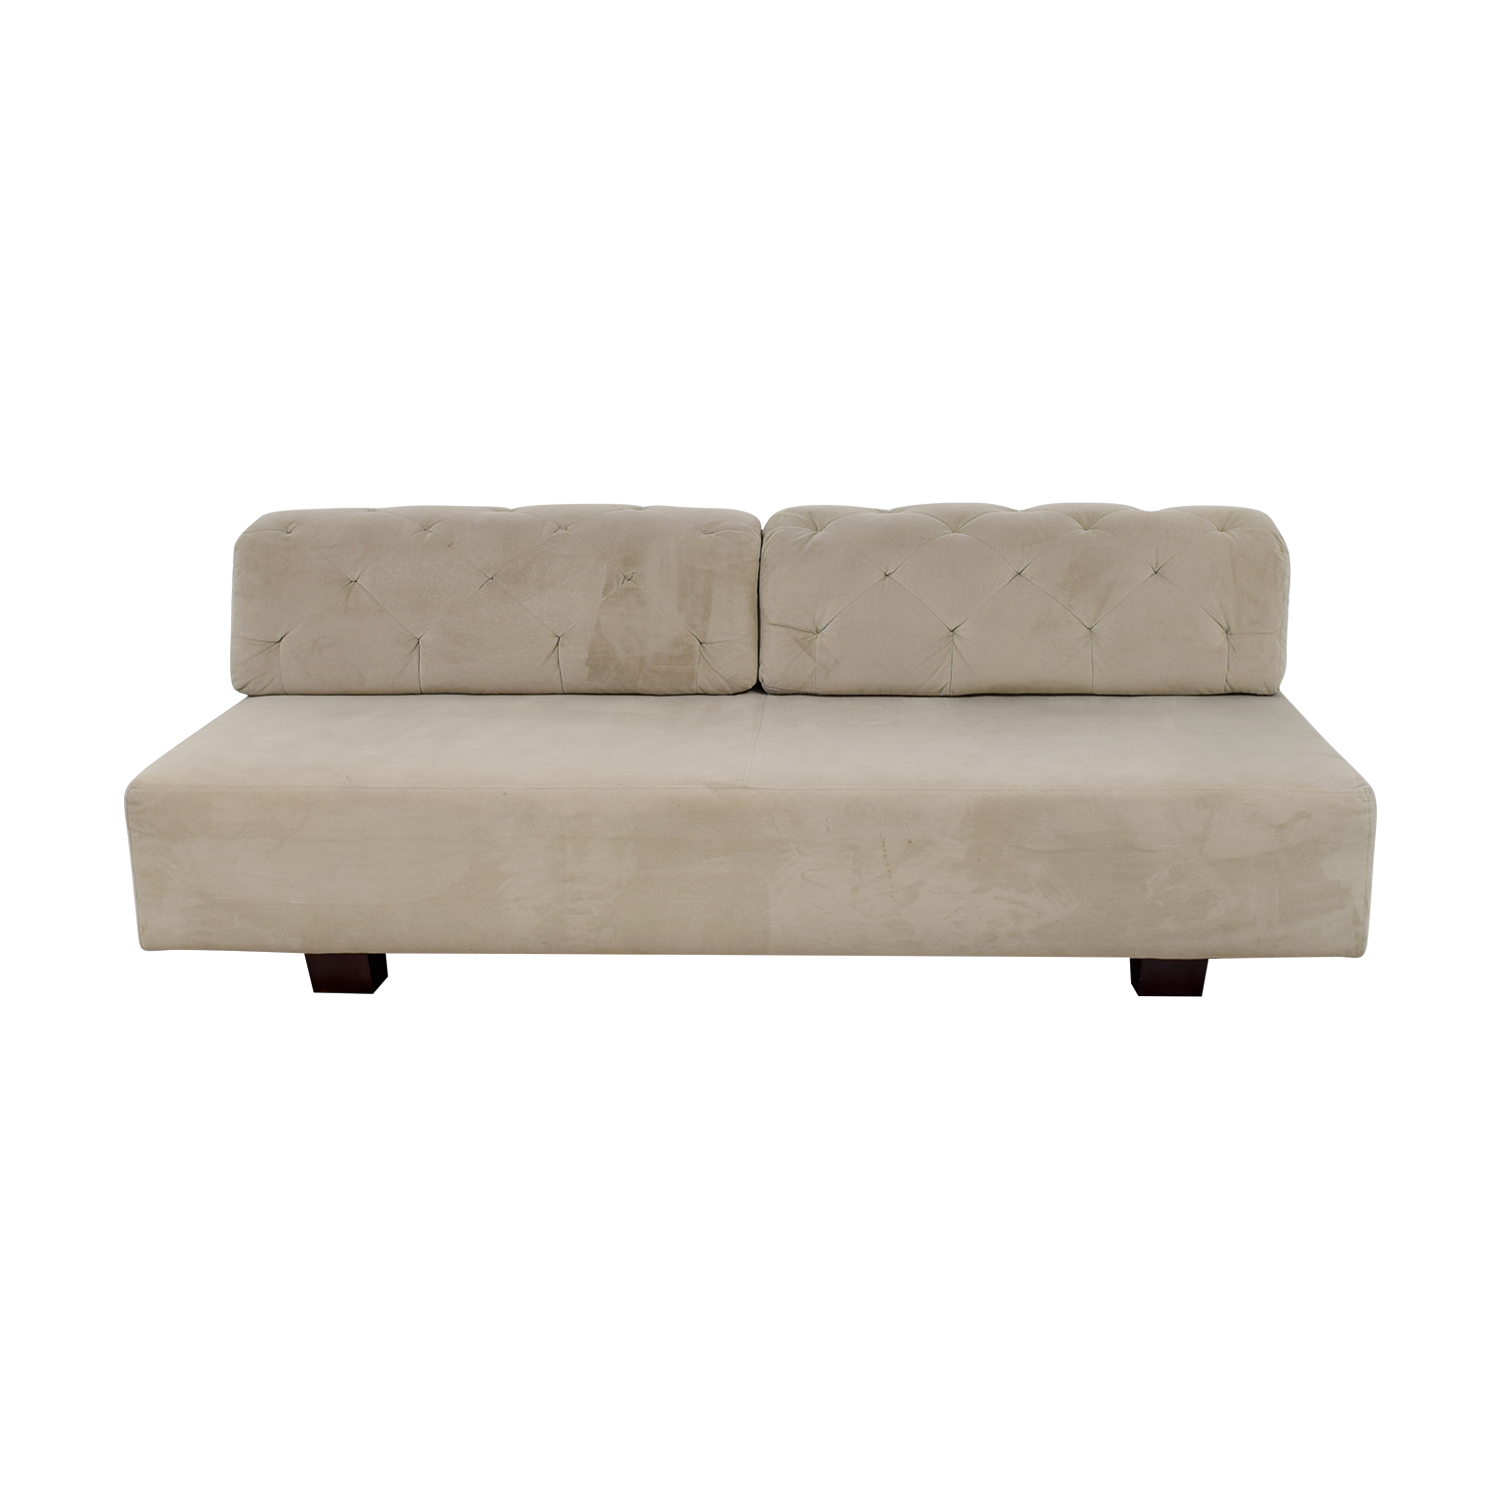 shop West Elm West Elm Beige Tuffed Sofa online